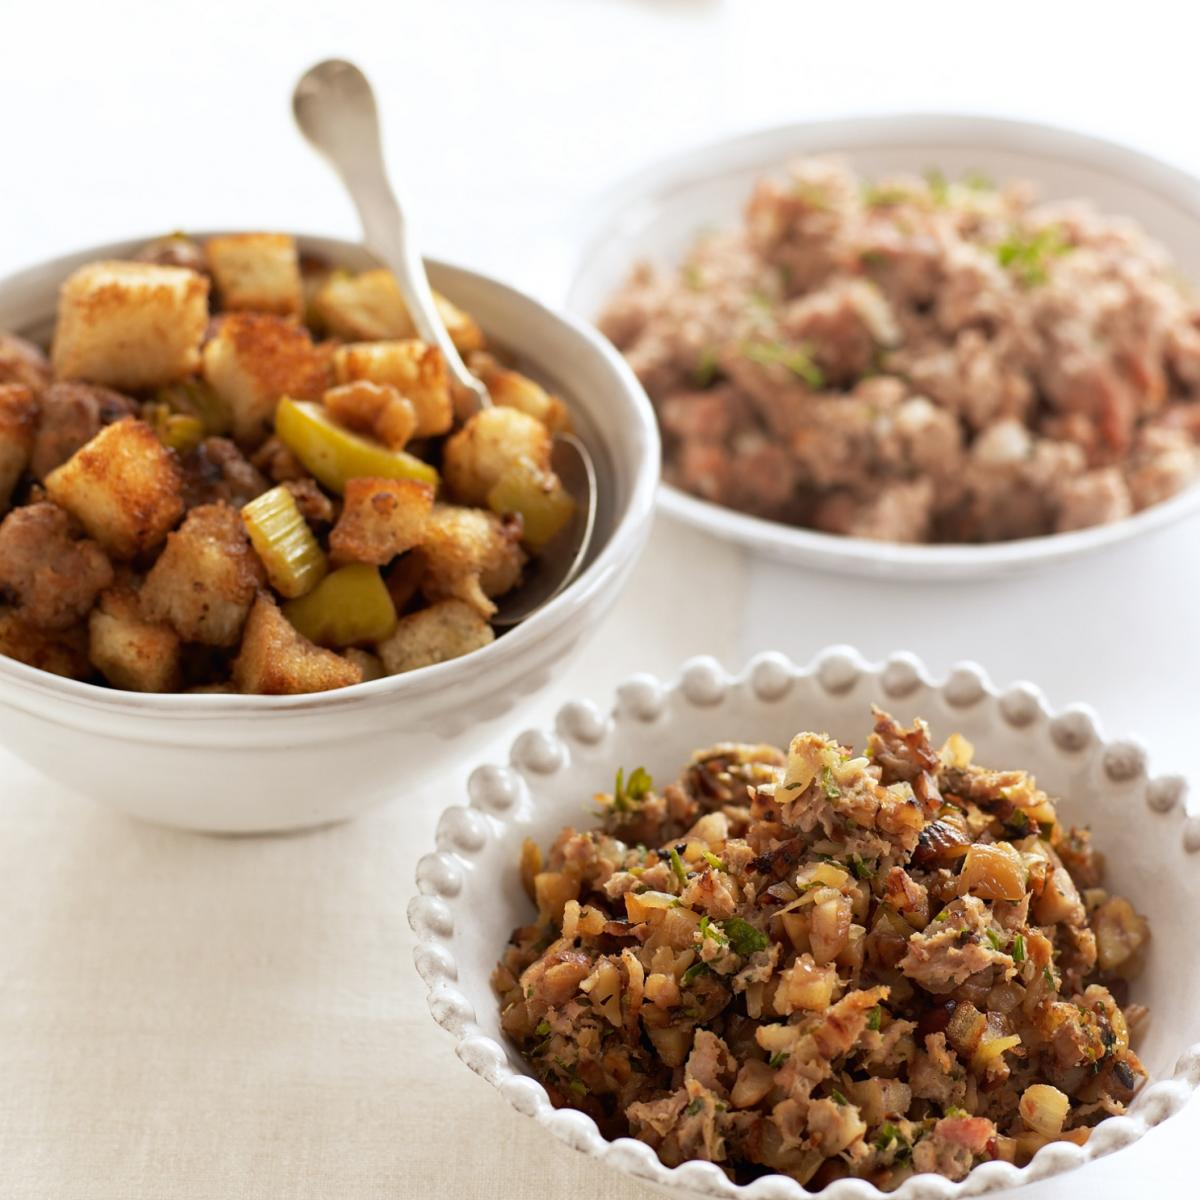 A picture of Delia's American Turkey Stuffing recipe